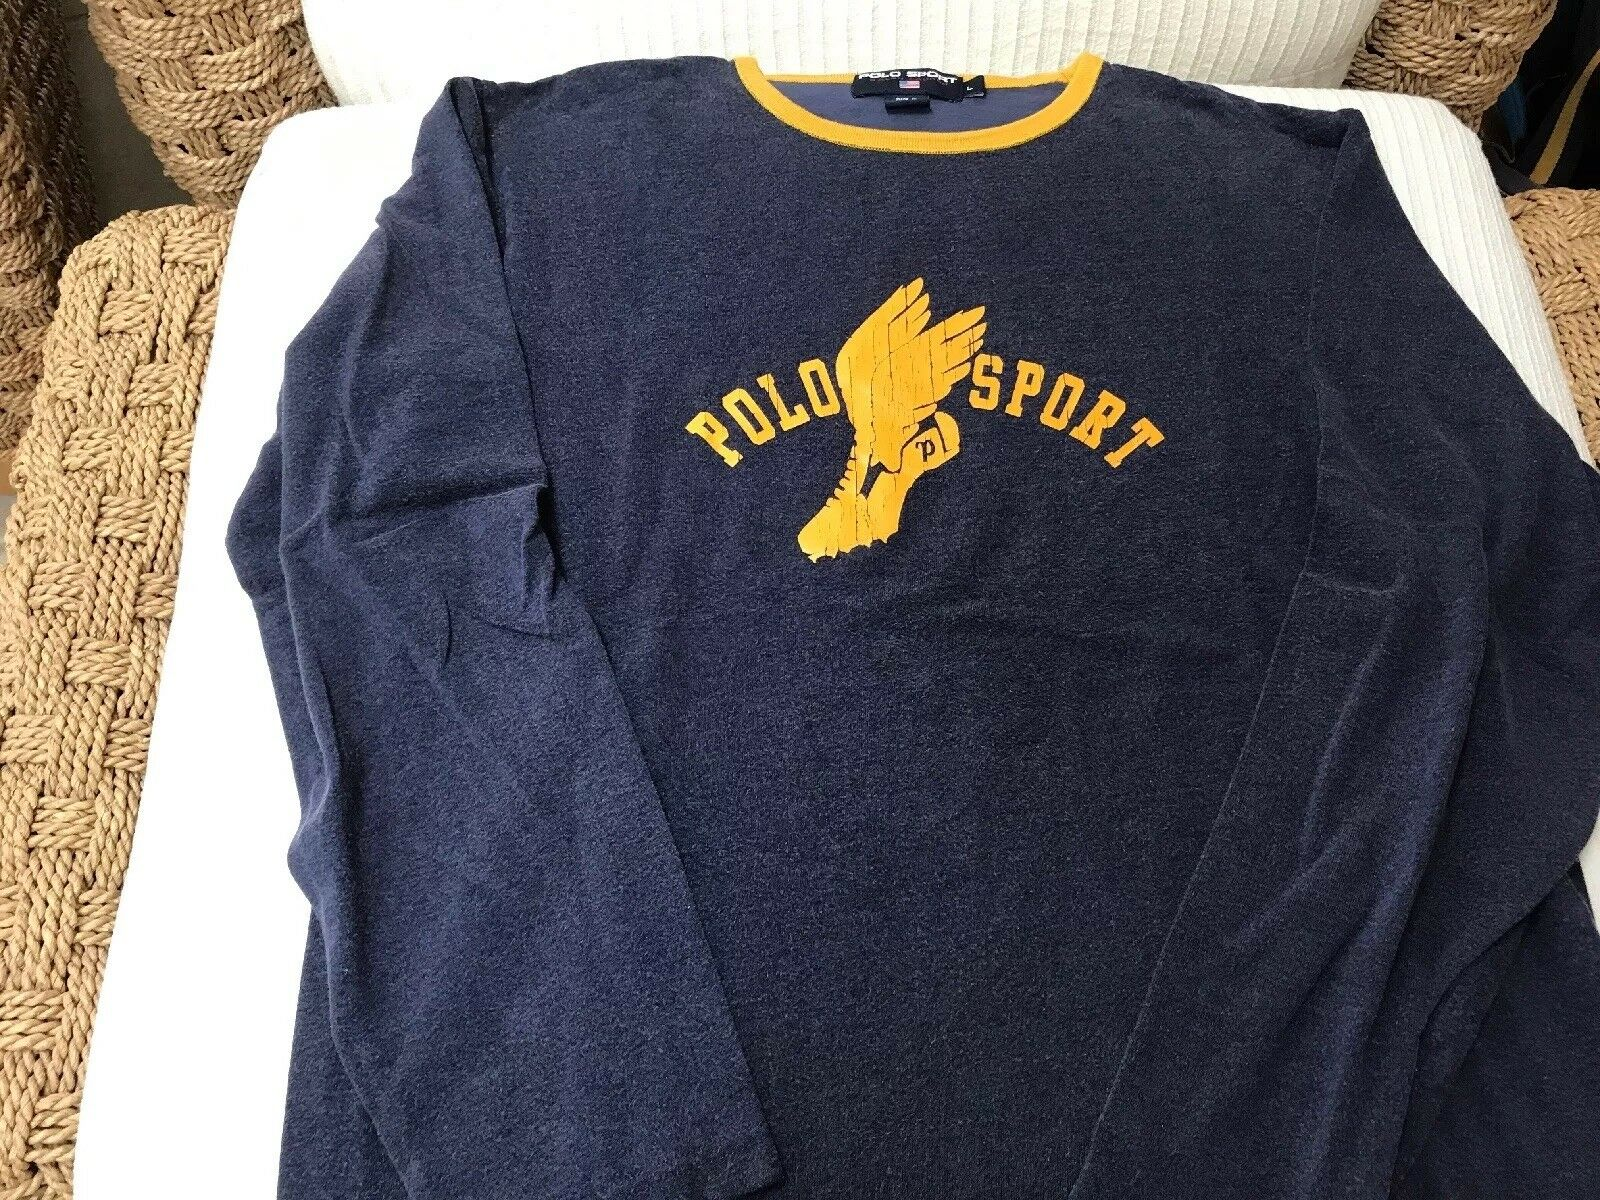 Polo Ralph Lauren Polo Long Sleeve, T-Shirt Size L, P Wing, POLO SPORT, Preowned